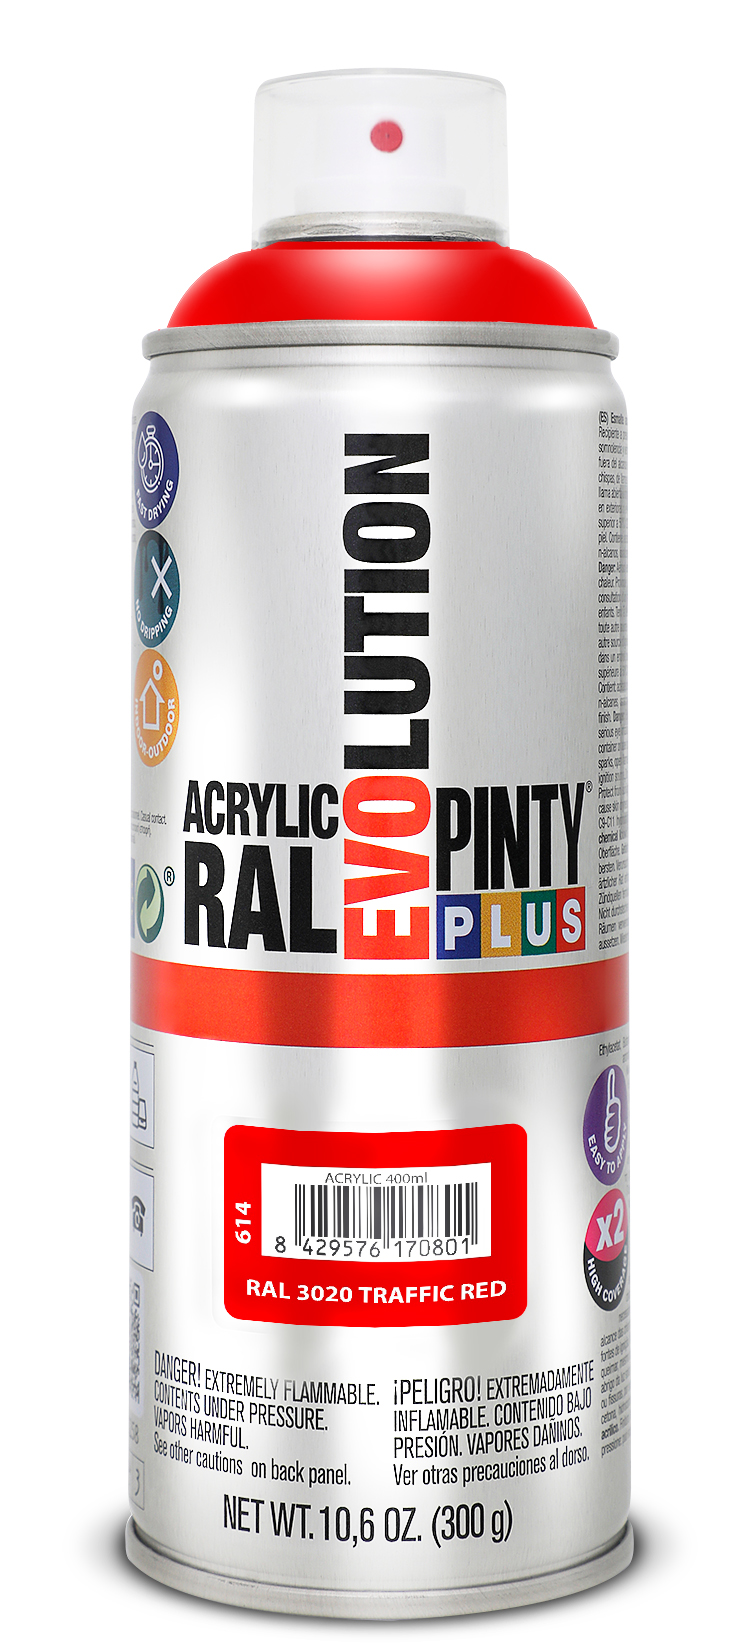 Pintyplus EVOLUTION acrylic spray paint